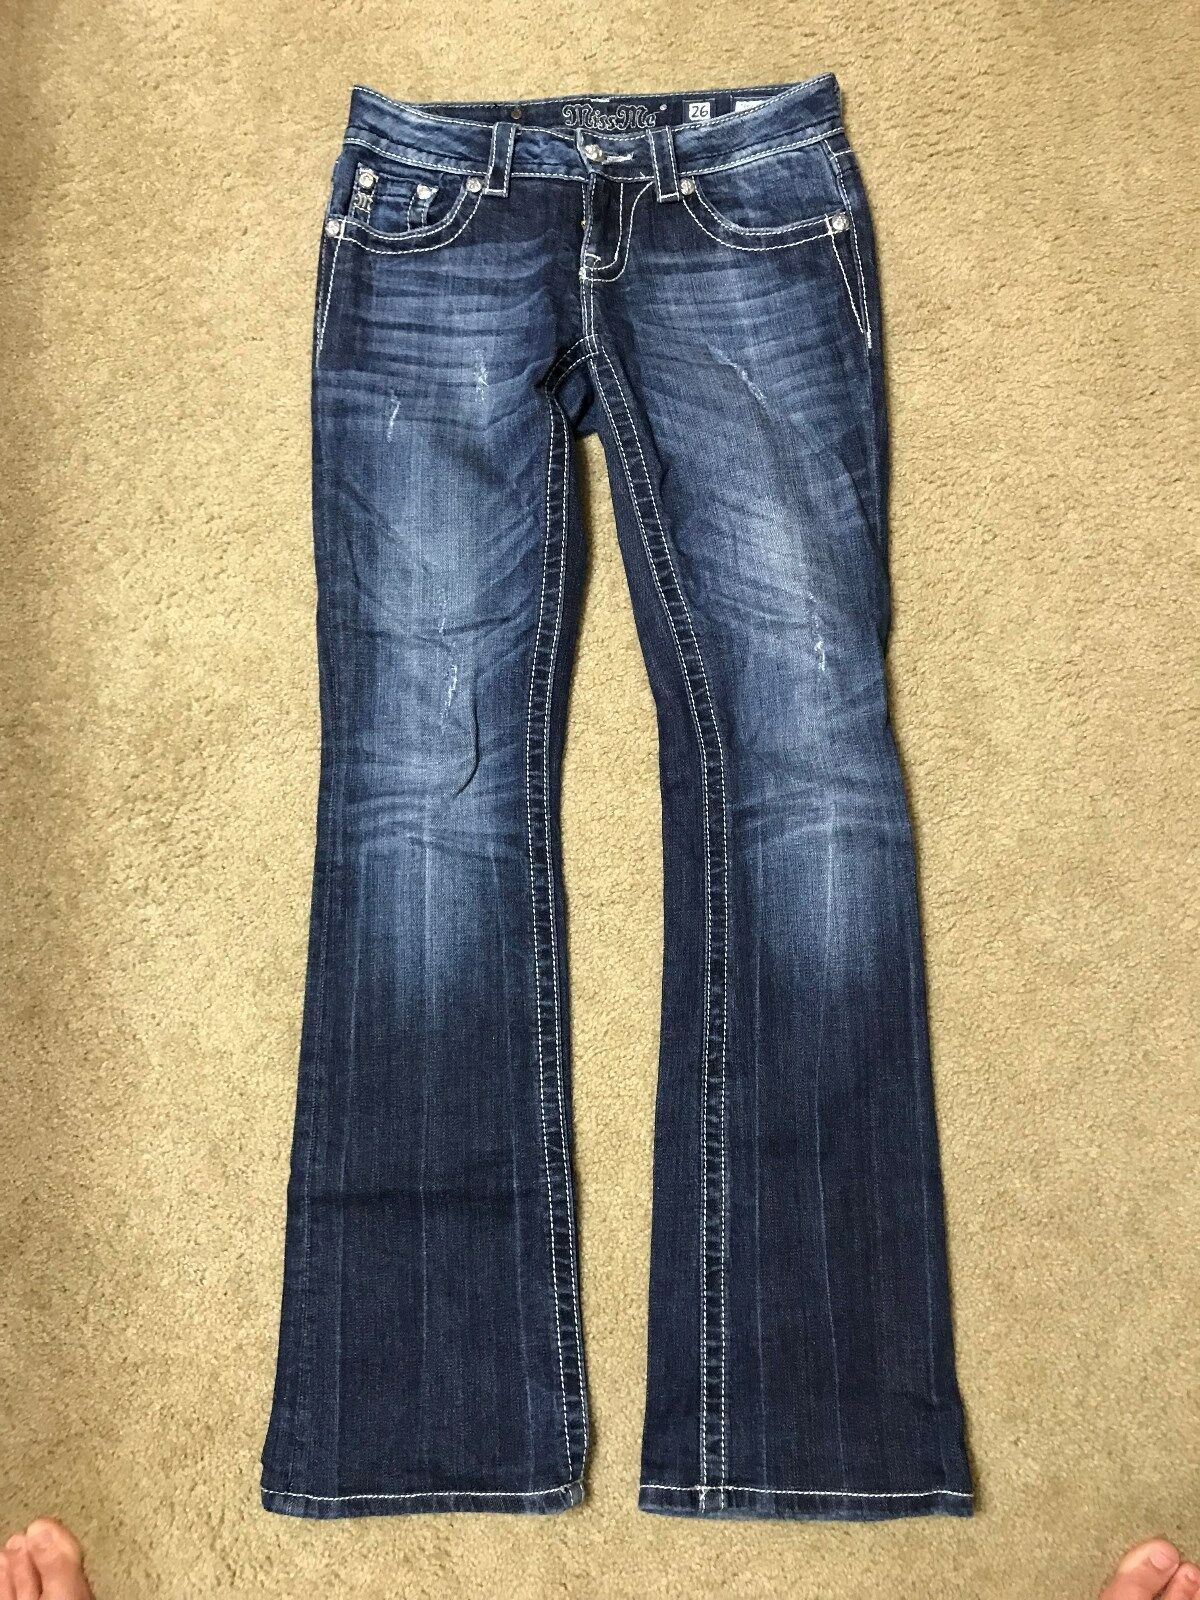 Miss Me Jeans Size 26 Bootcut, 32  Inseam-Excellent Condition